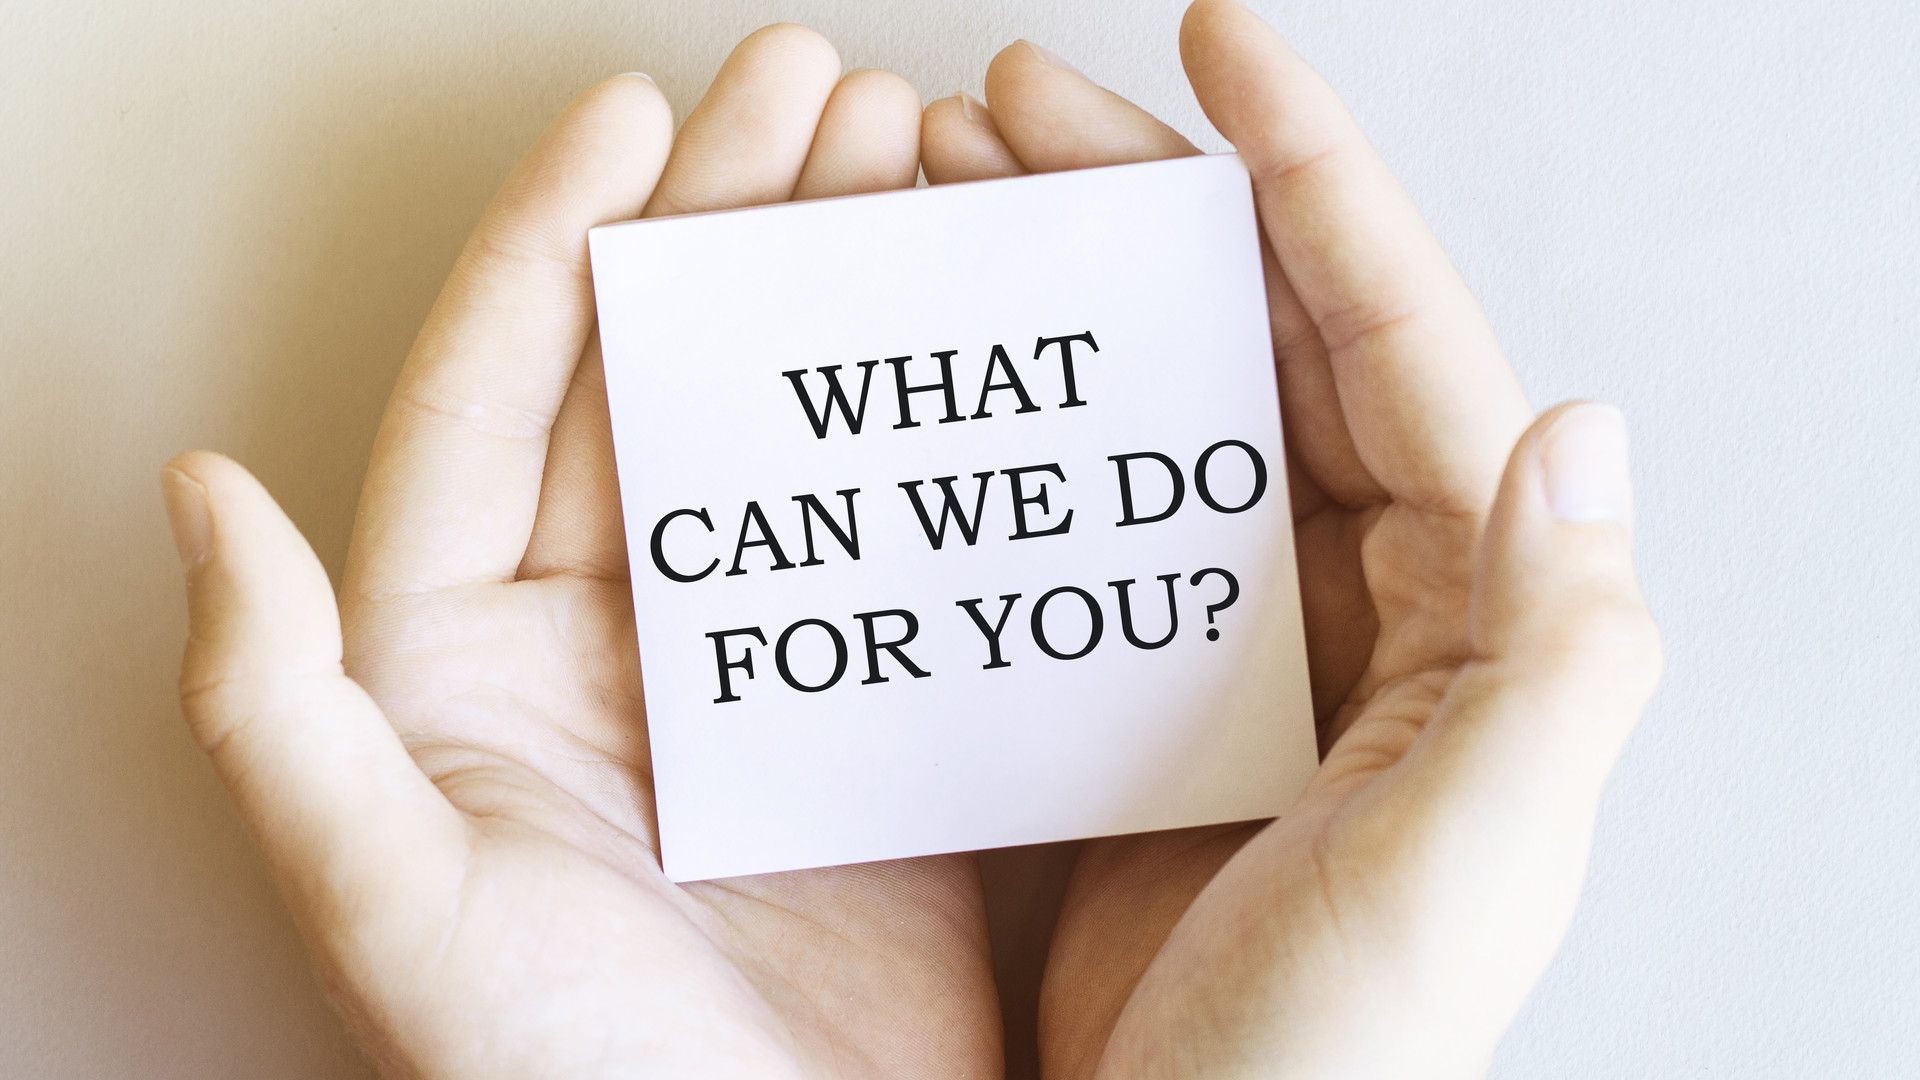 What can we do for you.jpeg